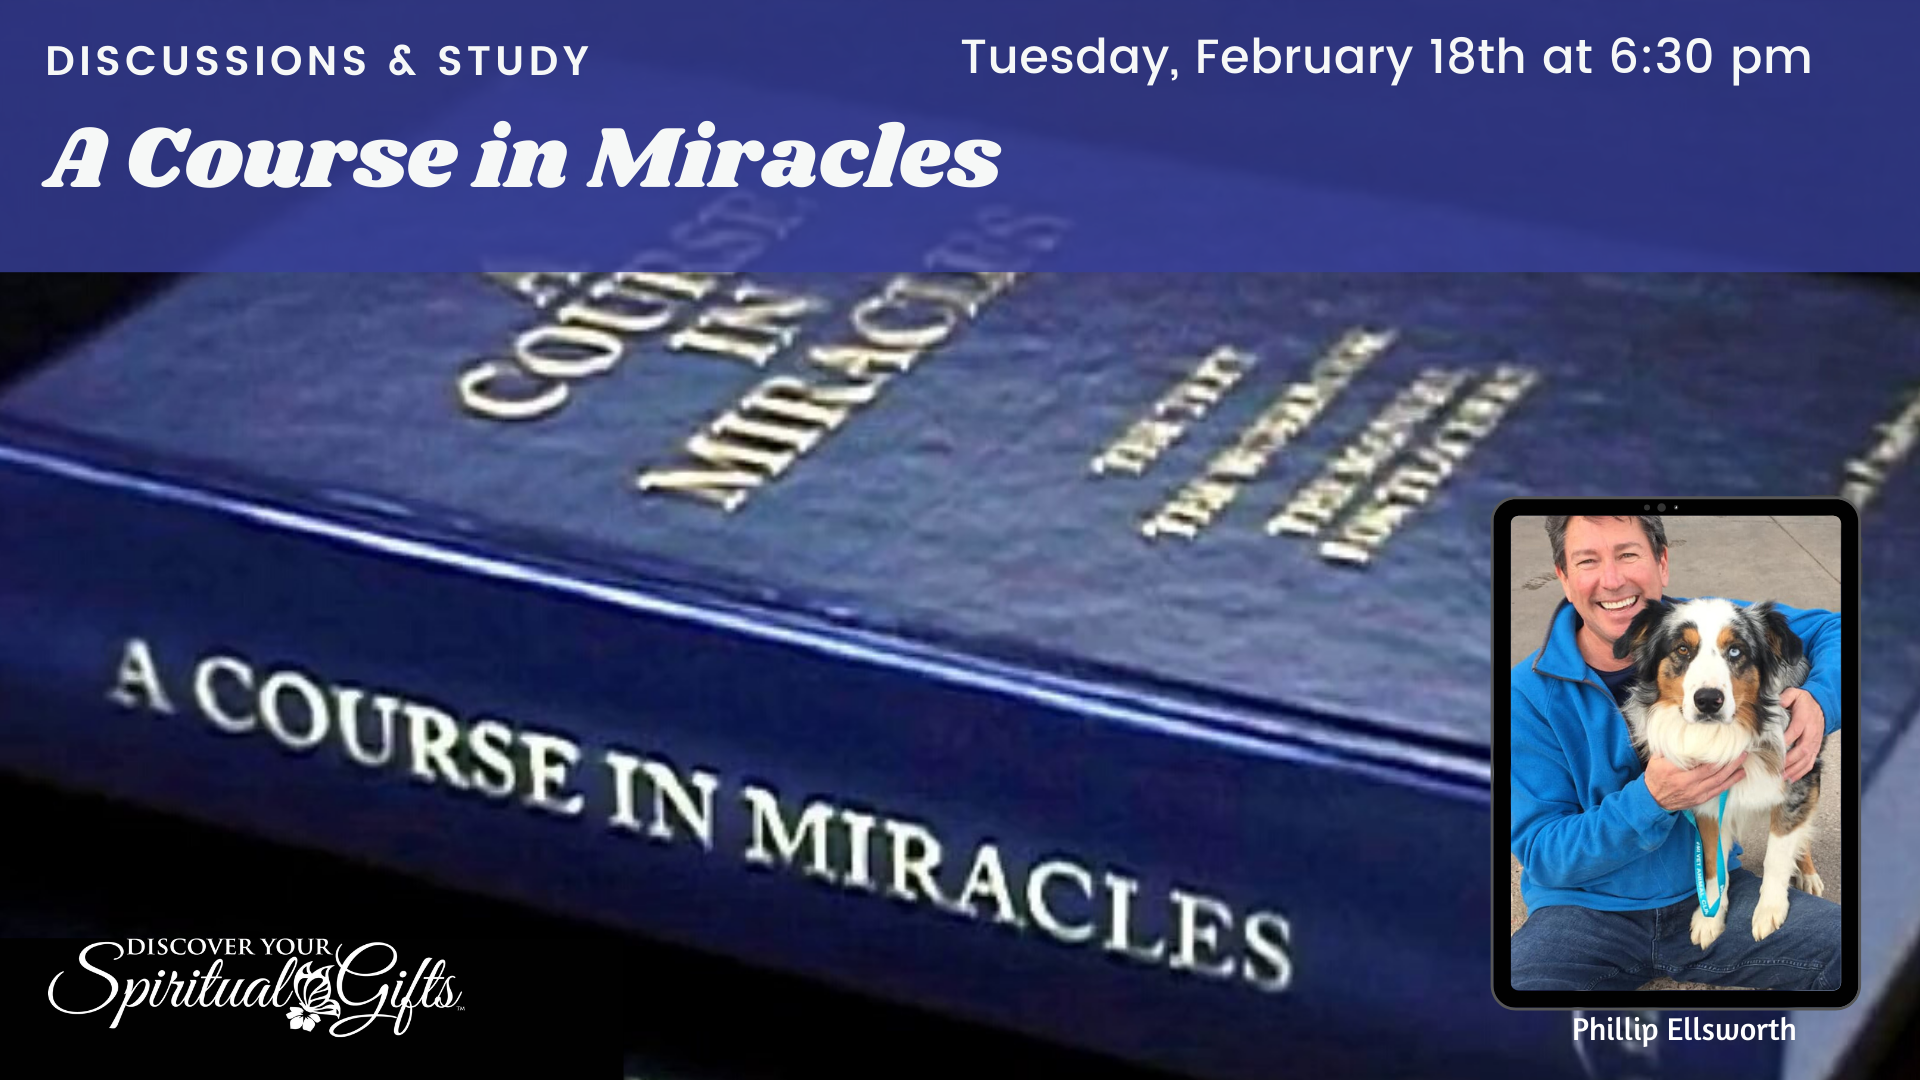 A COURSE IN MIRACLES: Discussions & Study